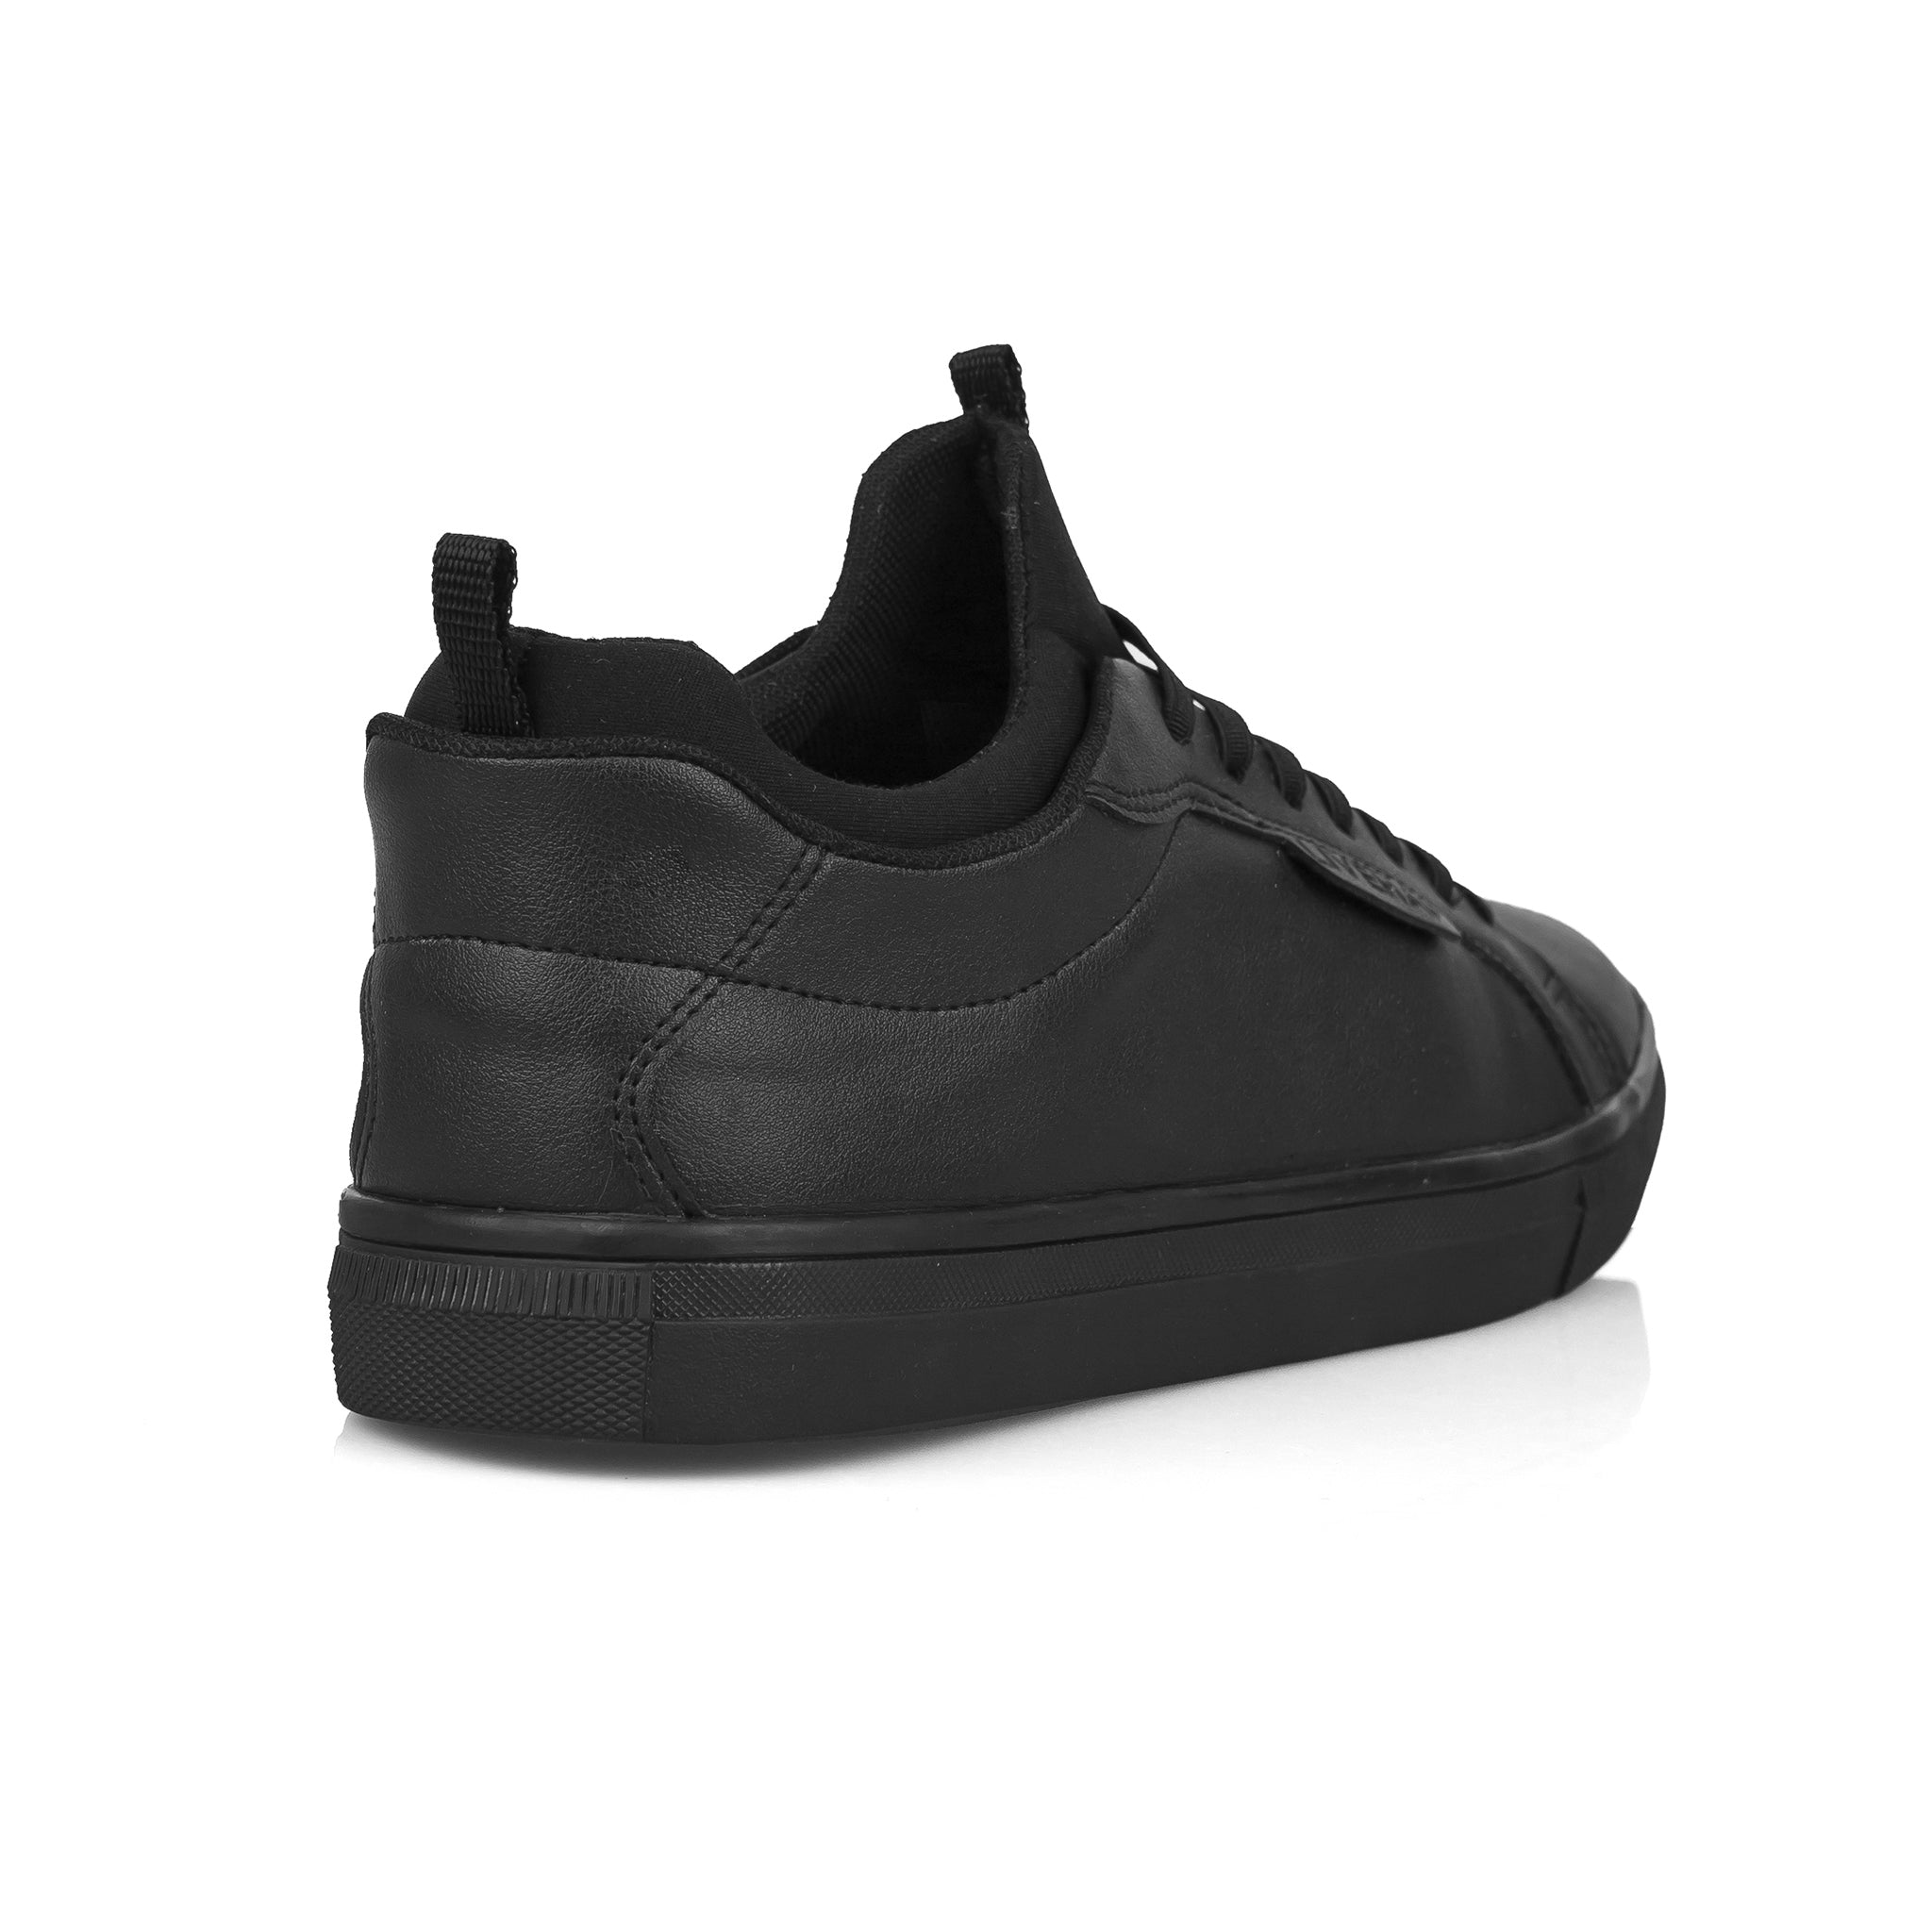 Teamo Sneakers All Black